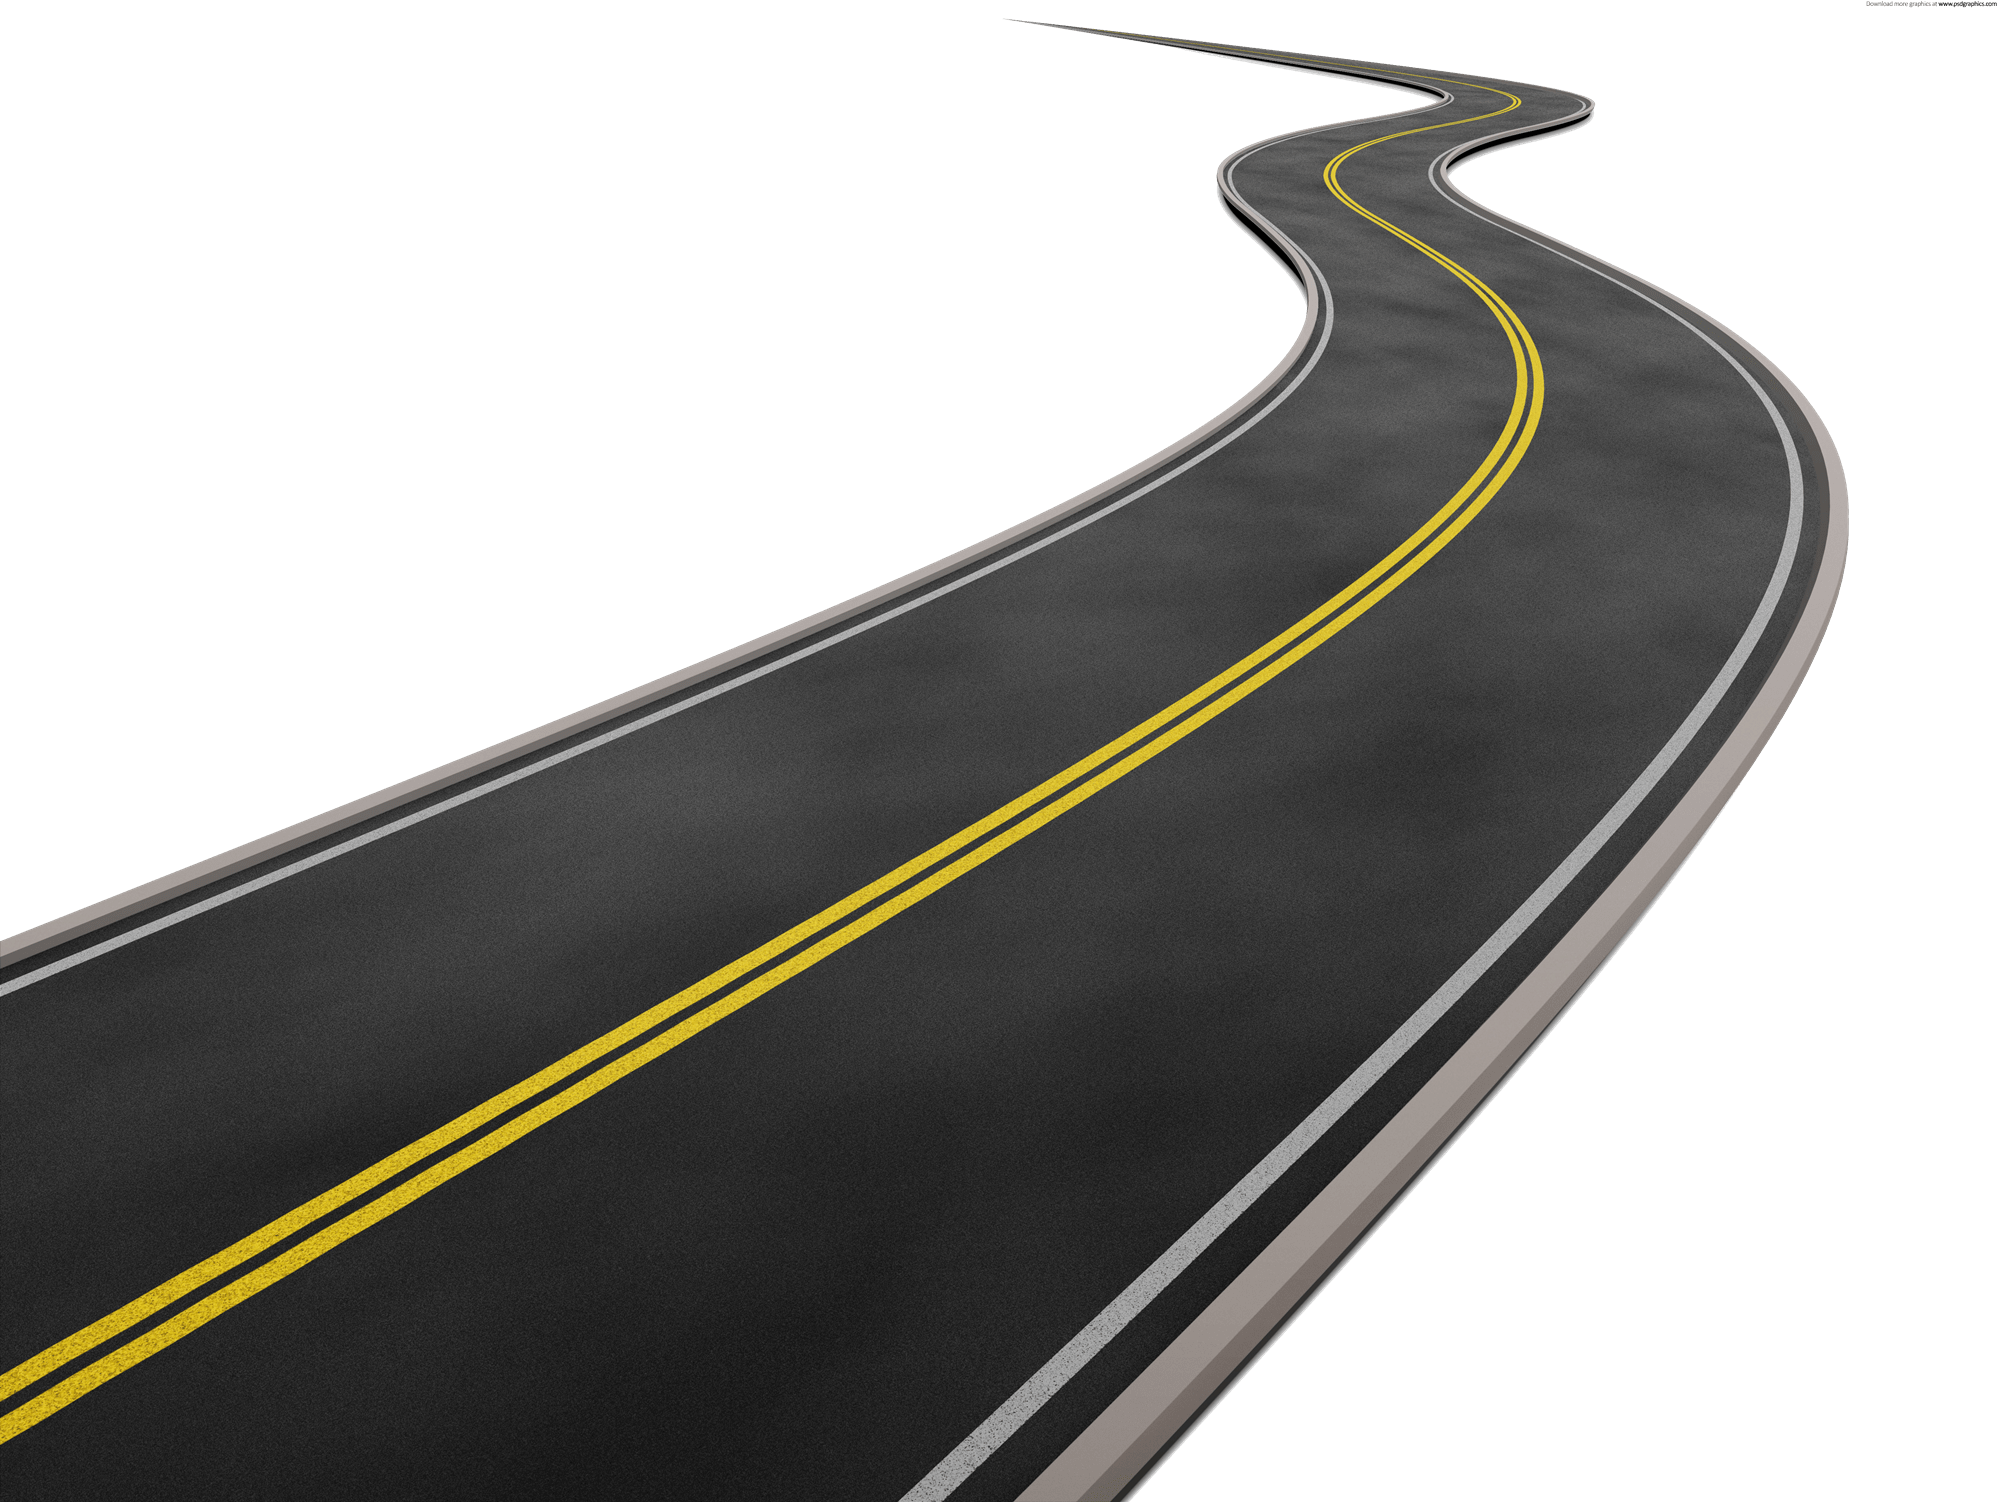 Png background. Road transparent stickpng download